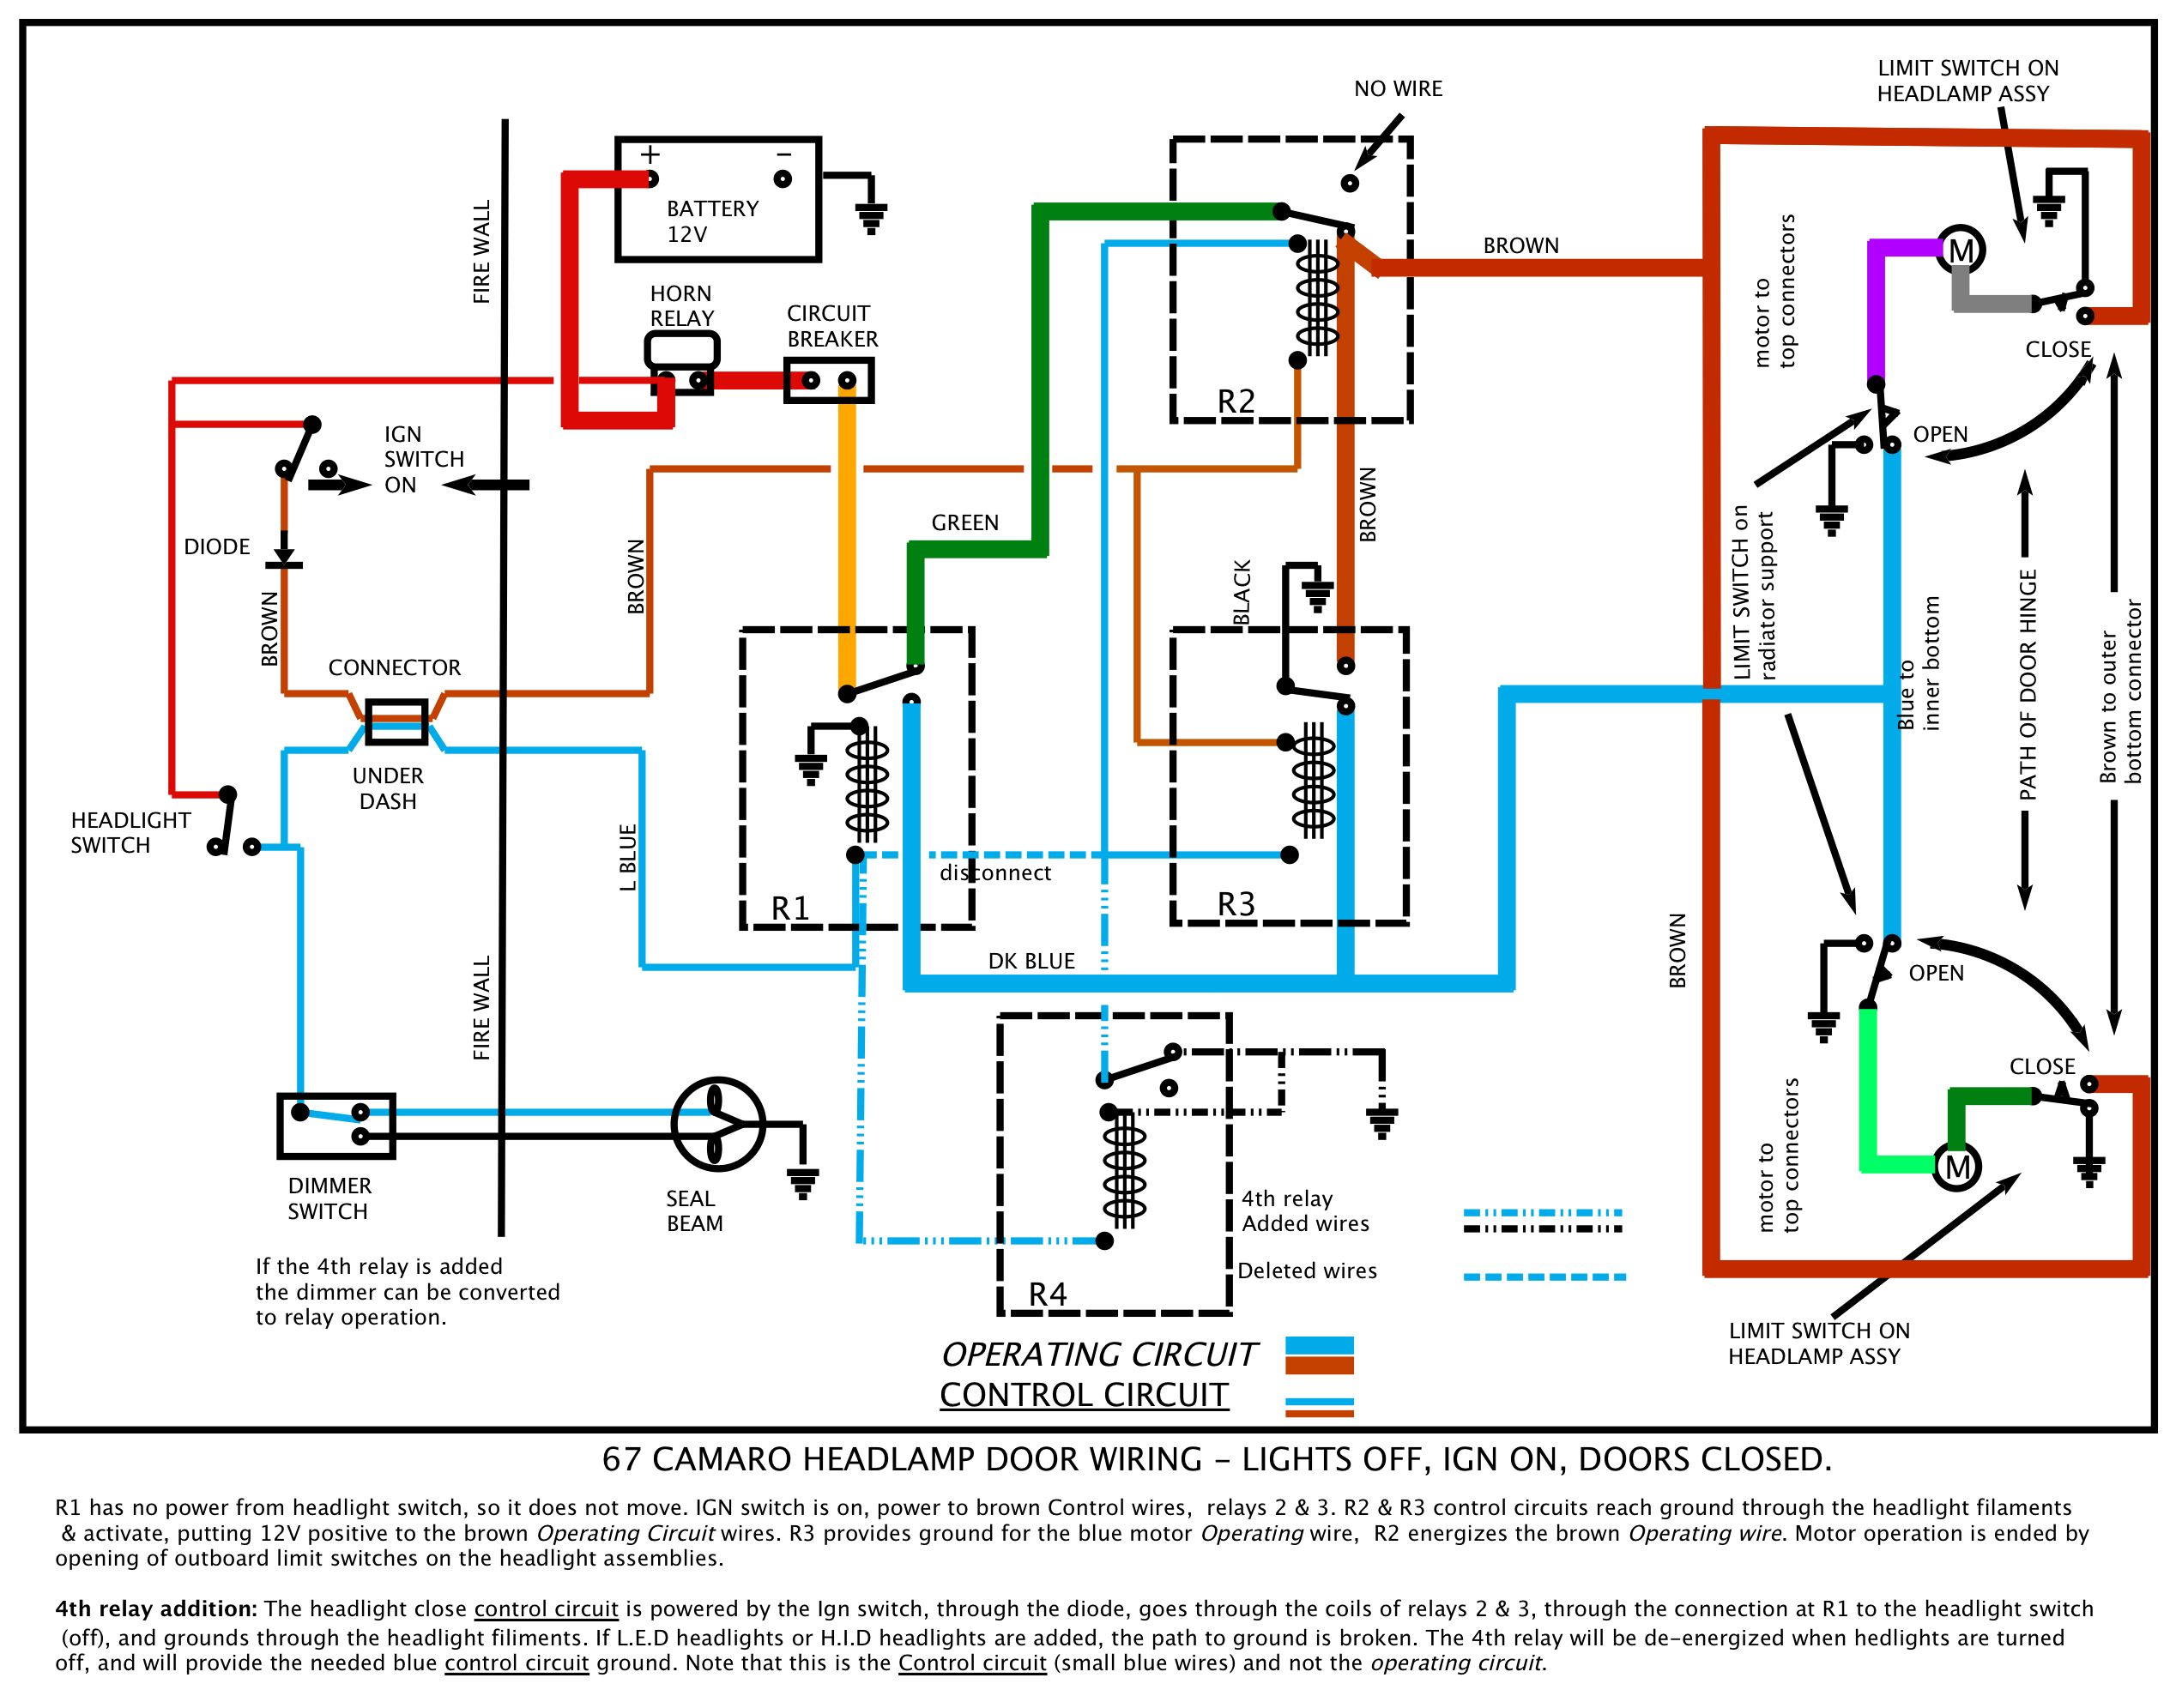 Surprising 1967 Camaro Tach Wiring Diagram Wiring Diagram Wiring Digital Resources Funapmognl